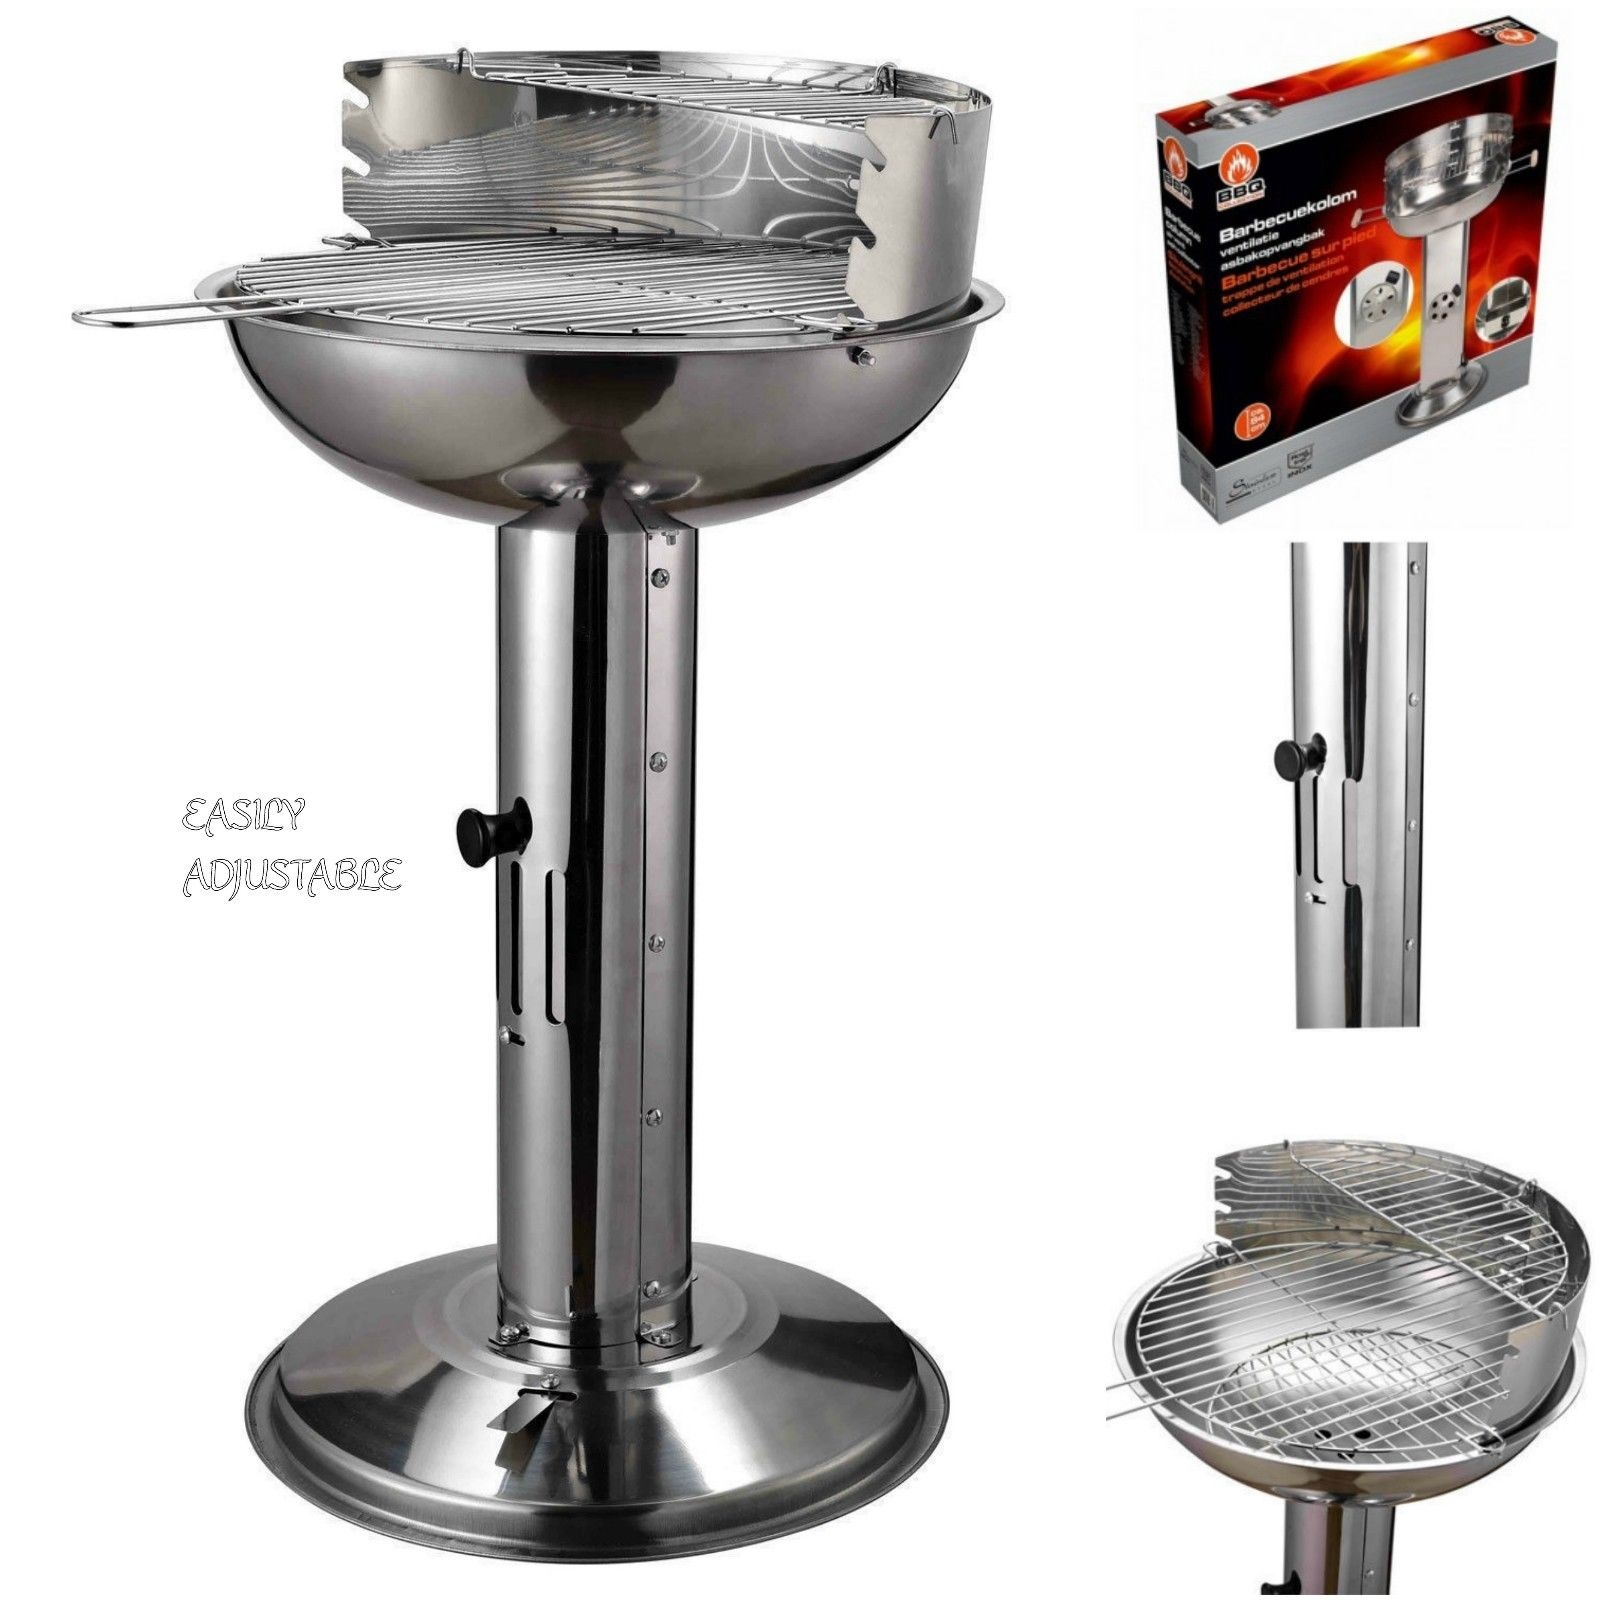 cheap pedestal find shopping for guides magic quotations cover deals electric on grill get bricks fire